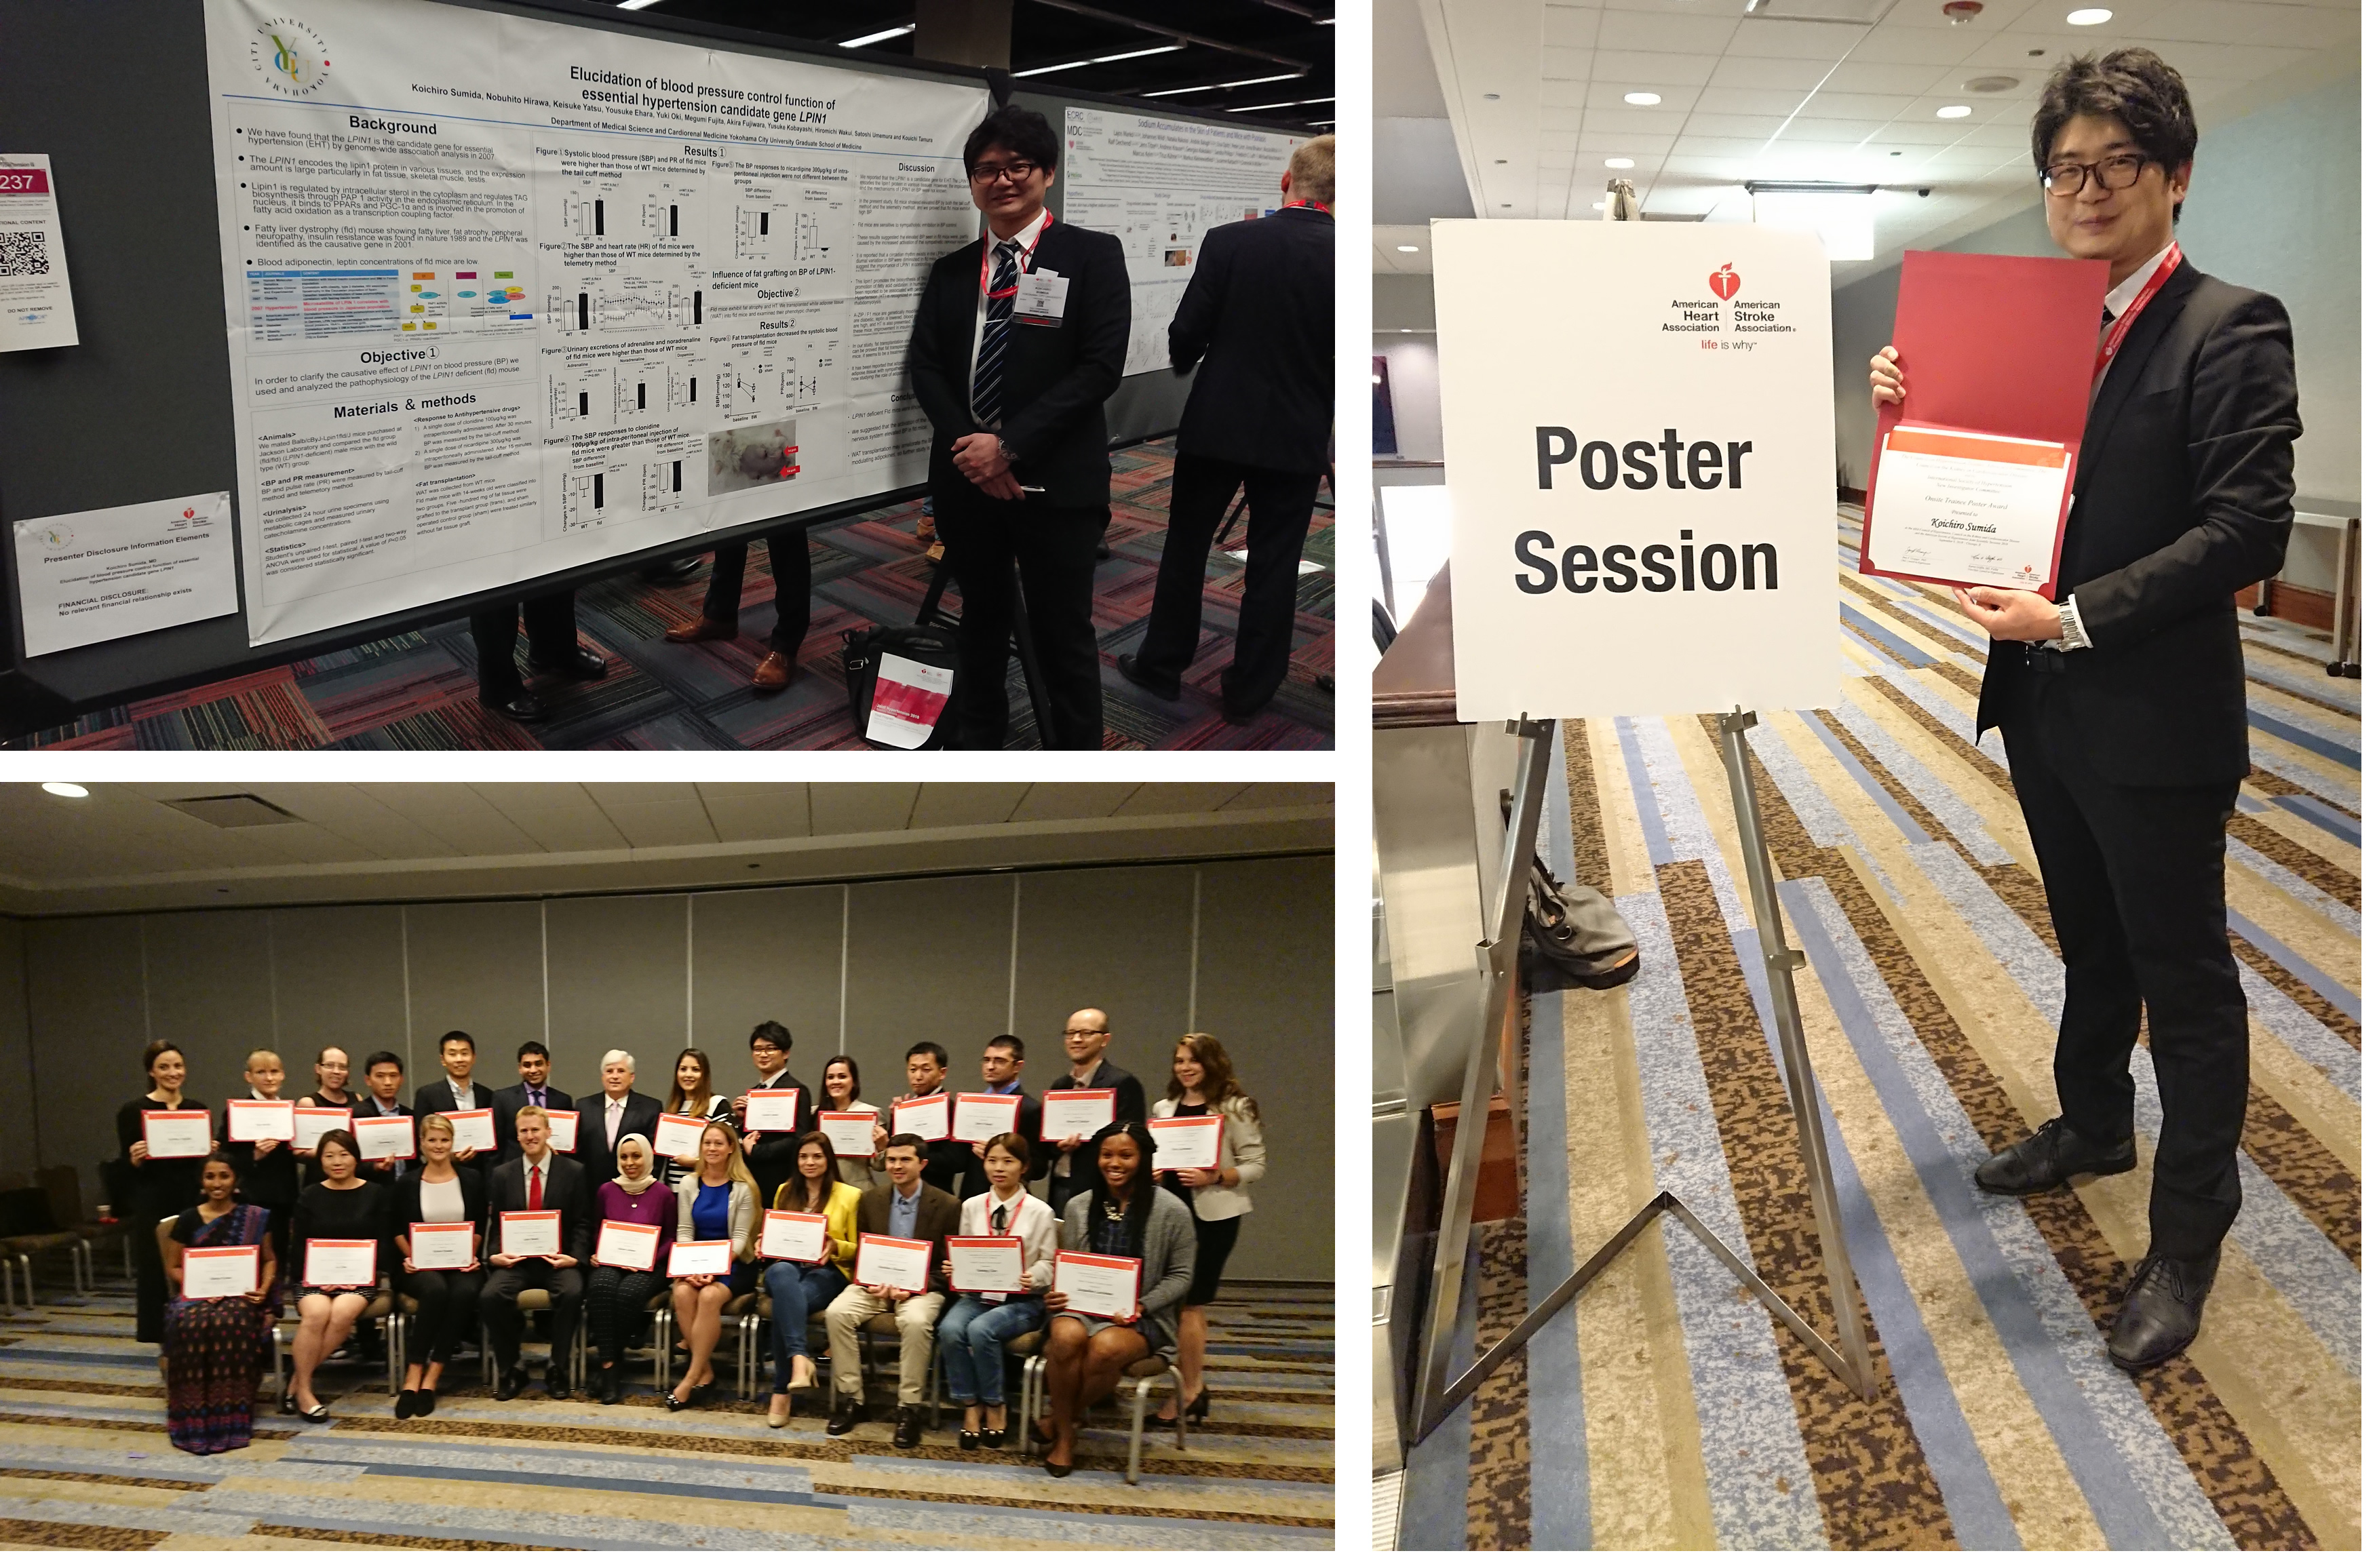 AHA Council on Hypertension 2018にて大学院生の角田剛一朗医師(腎臓・高血圧G、ゲノムグループ)がOnsite Trainee Poster Awardを受賞しました!